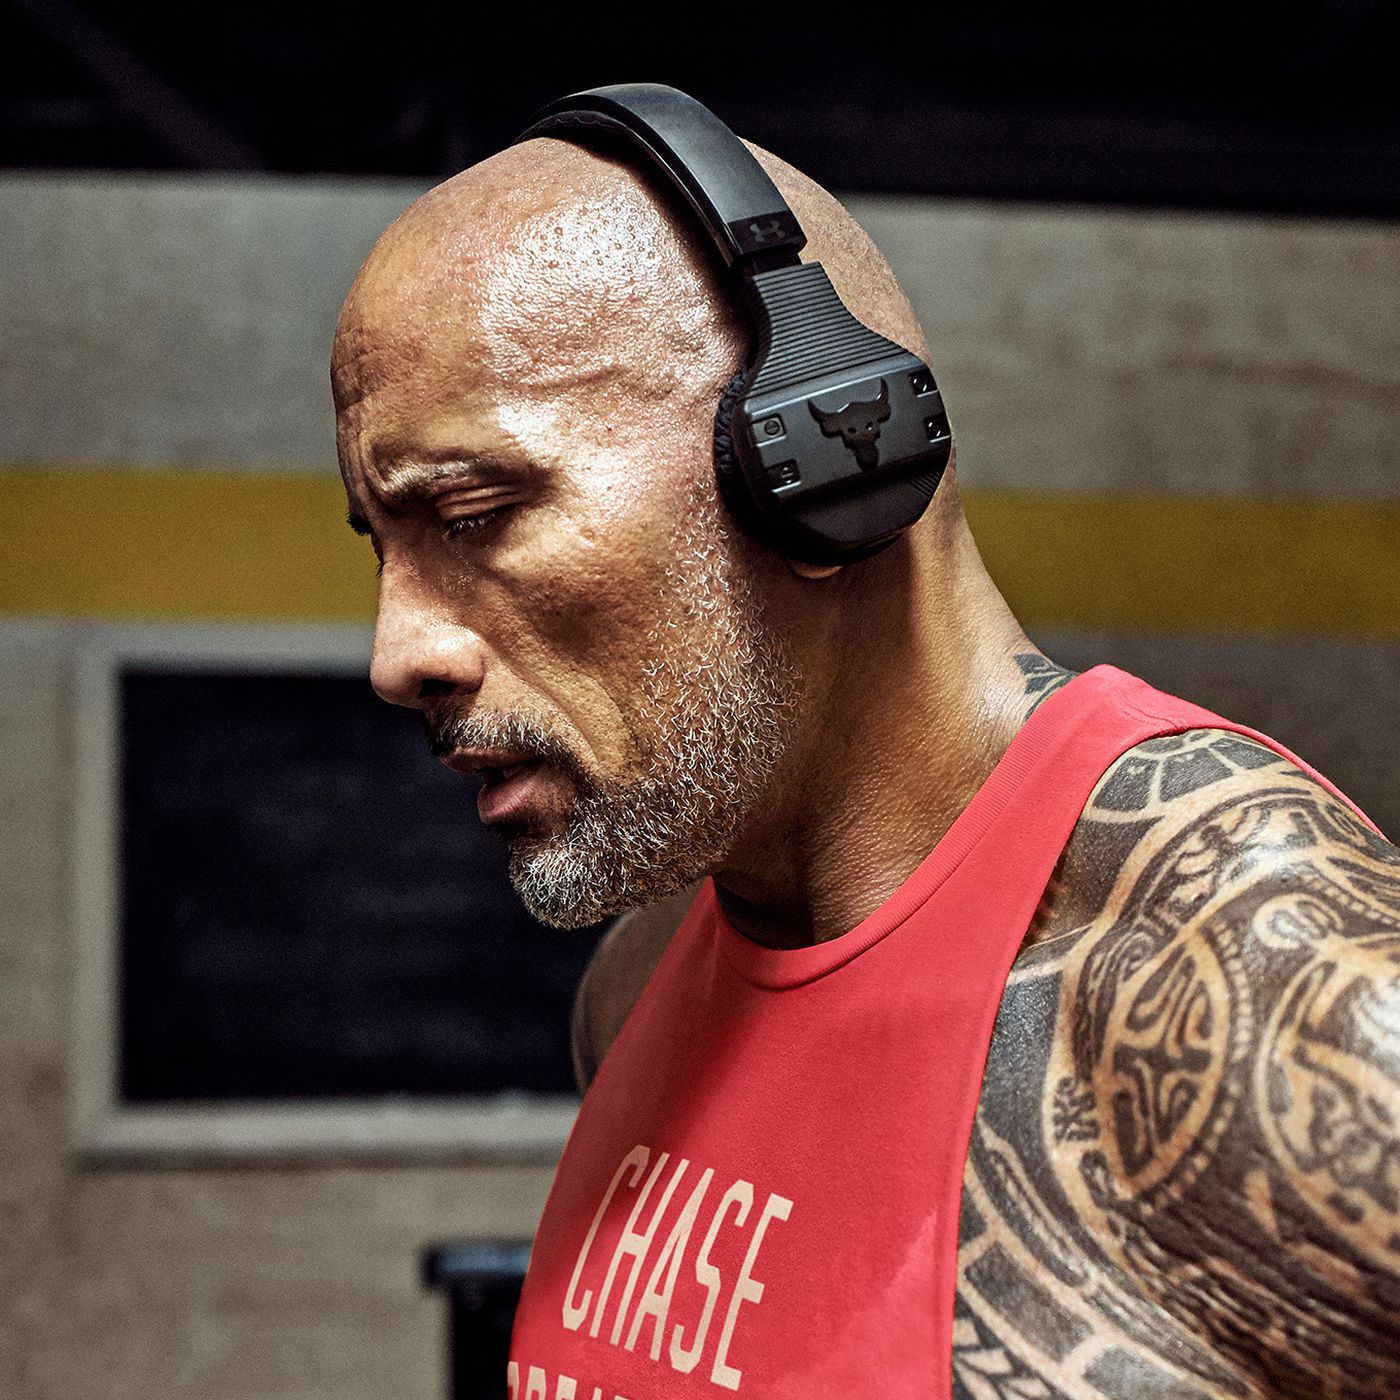 The Rock Launches His Own Sweat Proof Workout Headphones The Verge